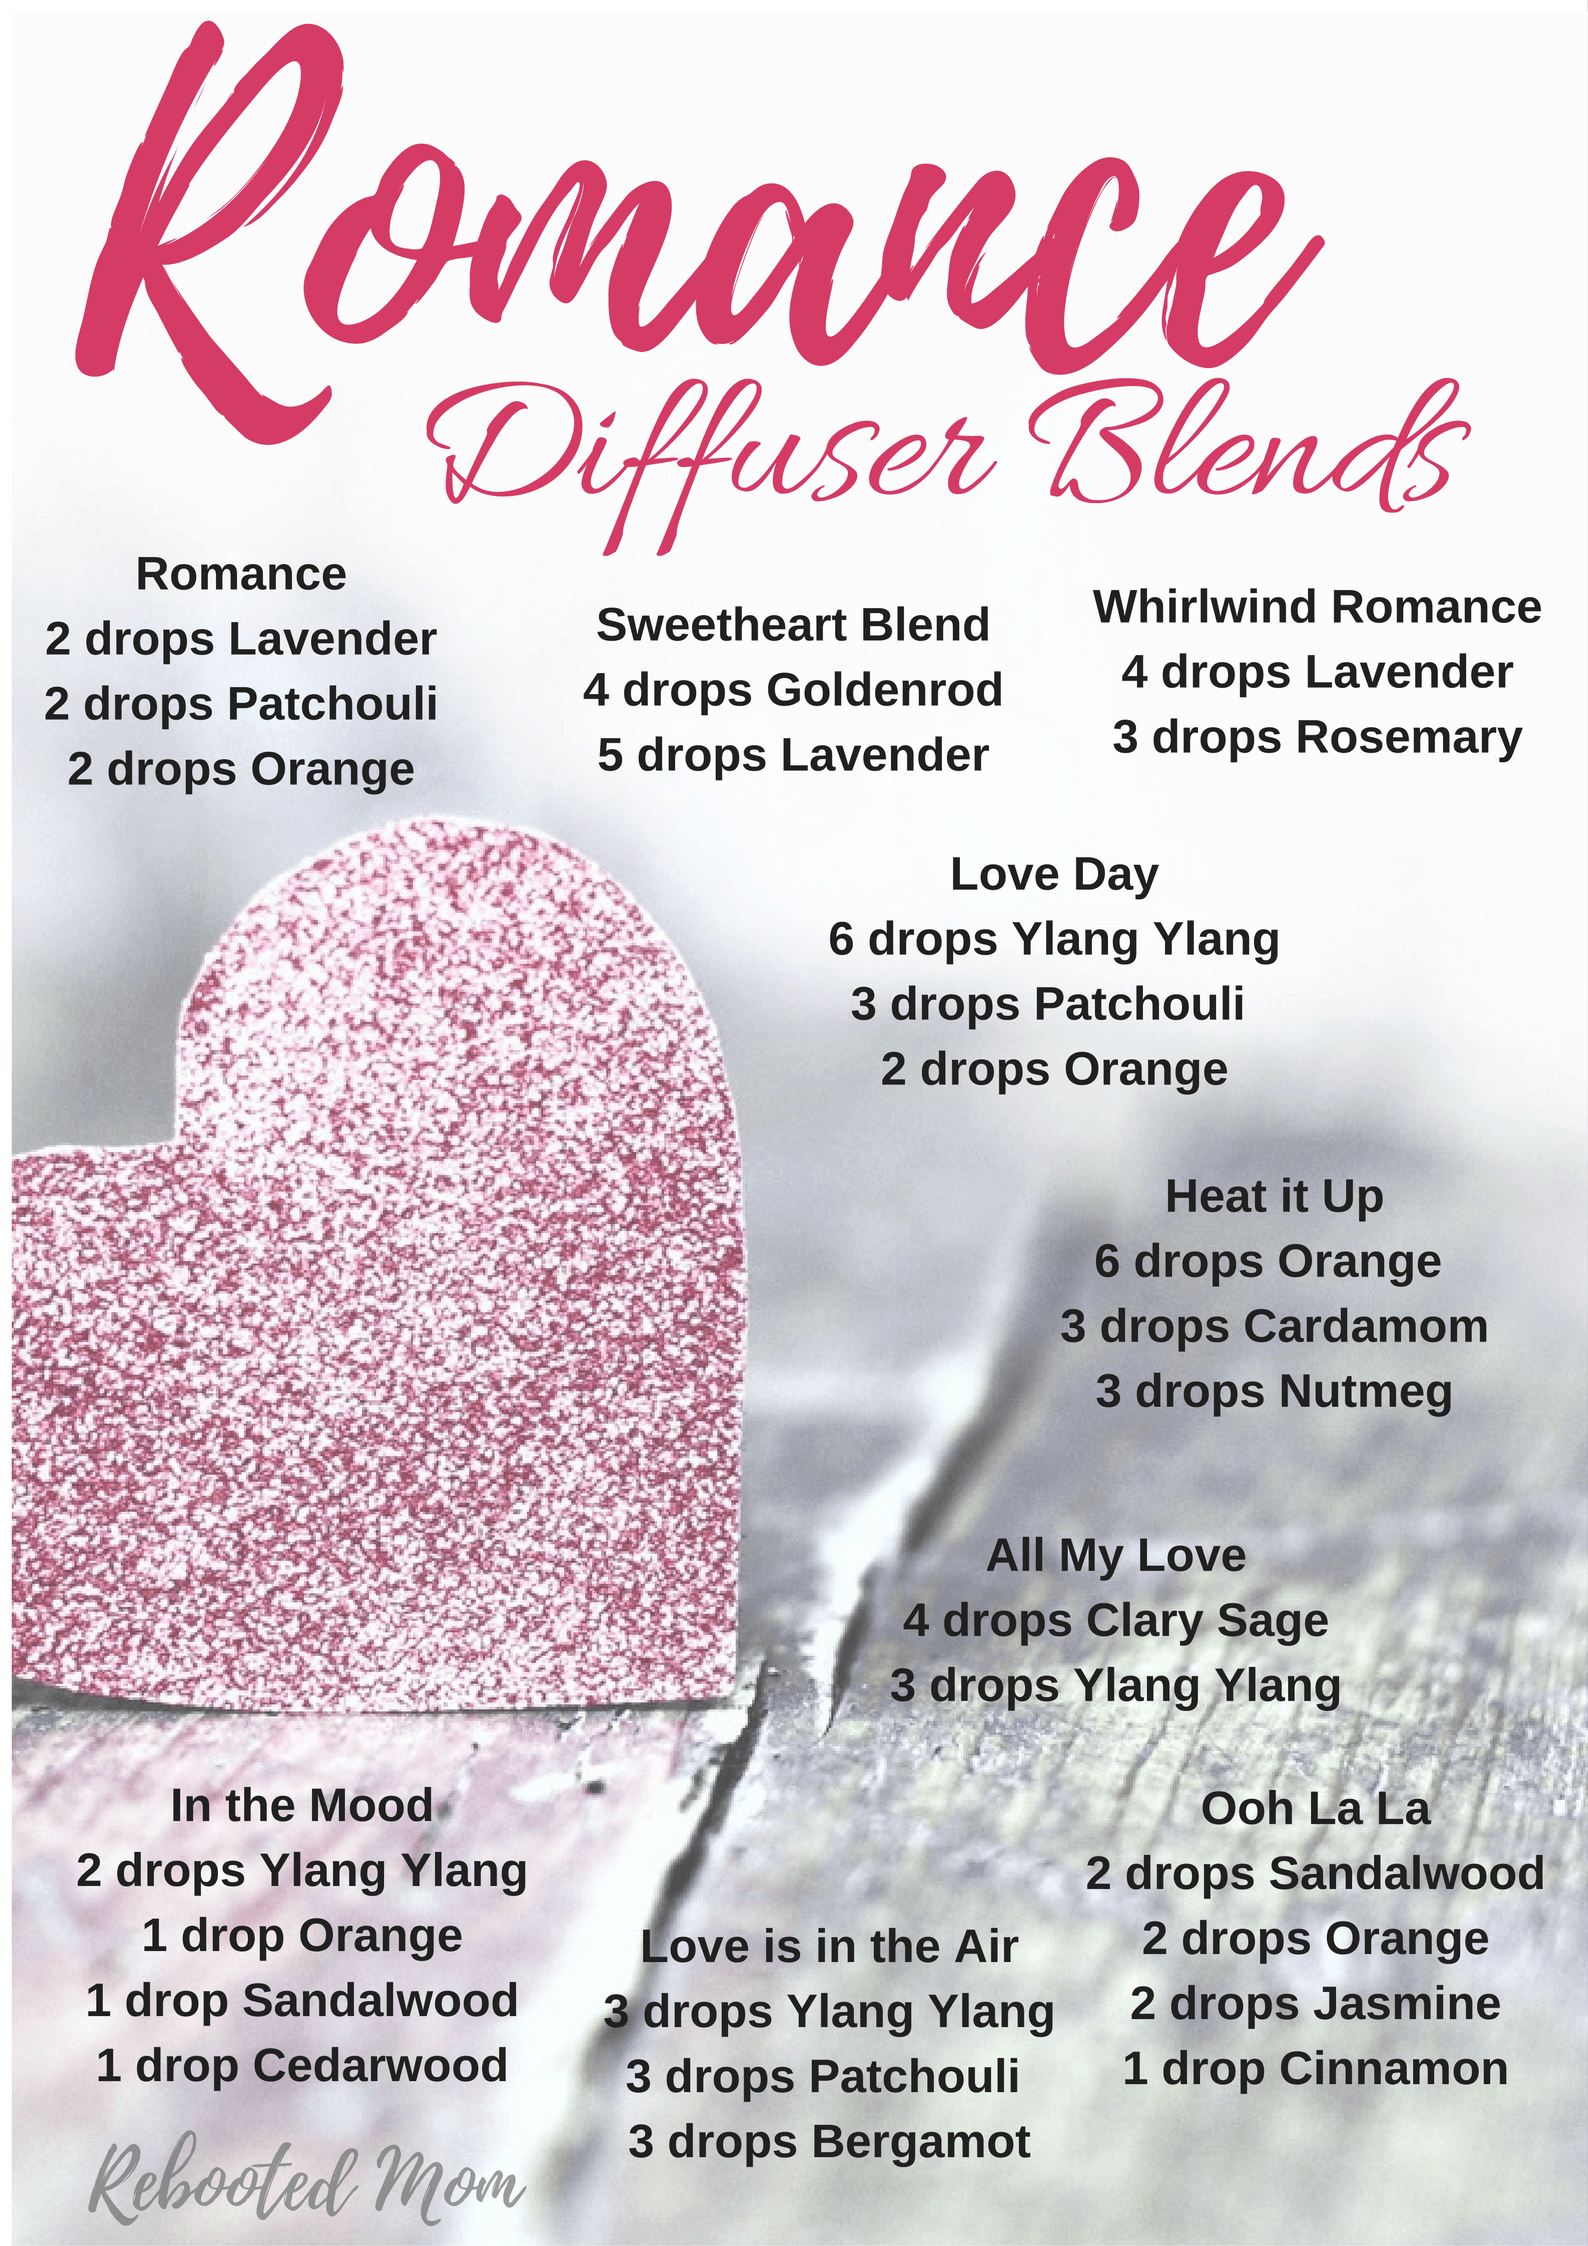 Romance Diffuser Blends Reed Diffuser Essential Oils